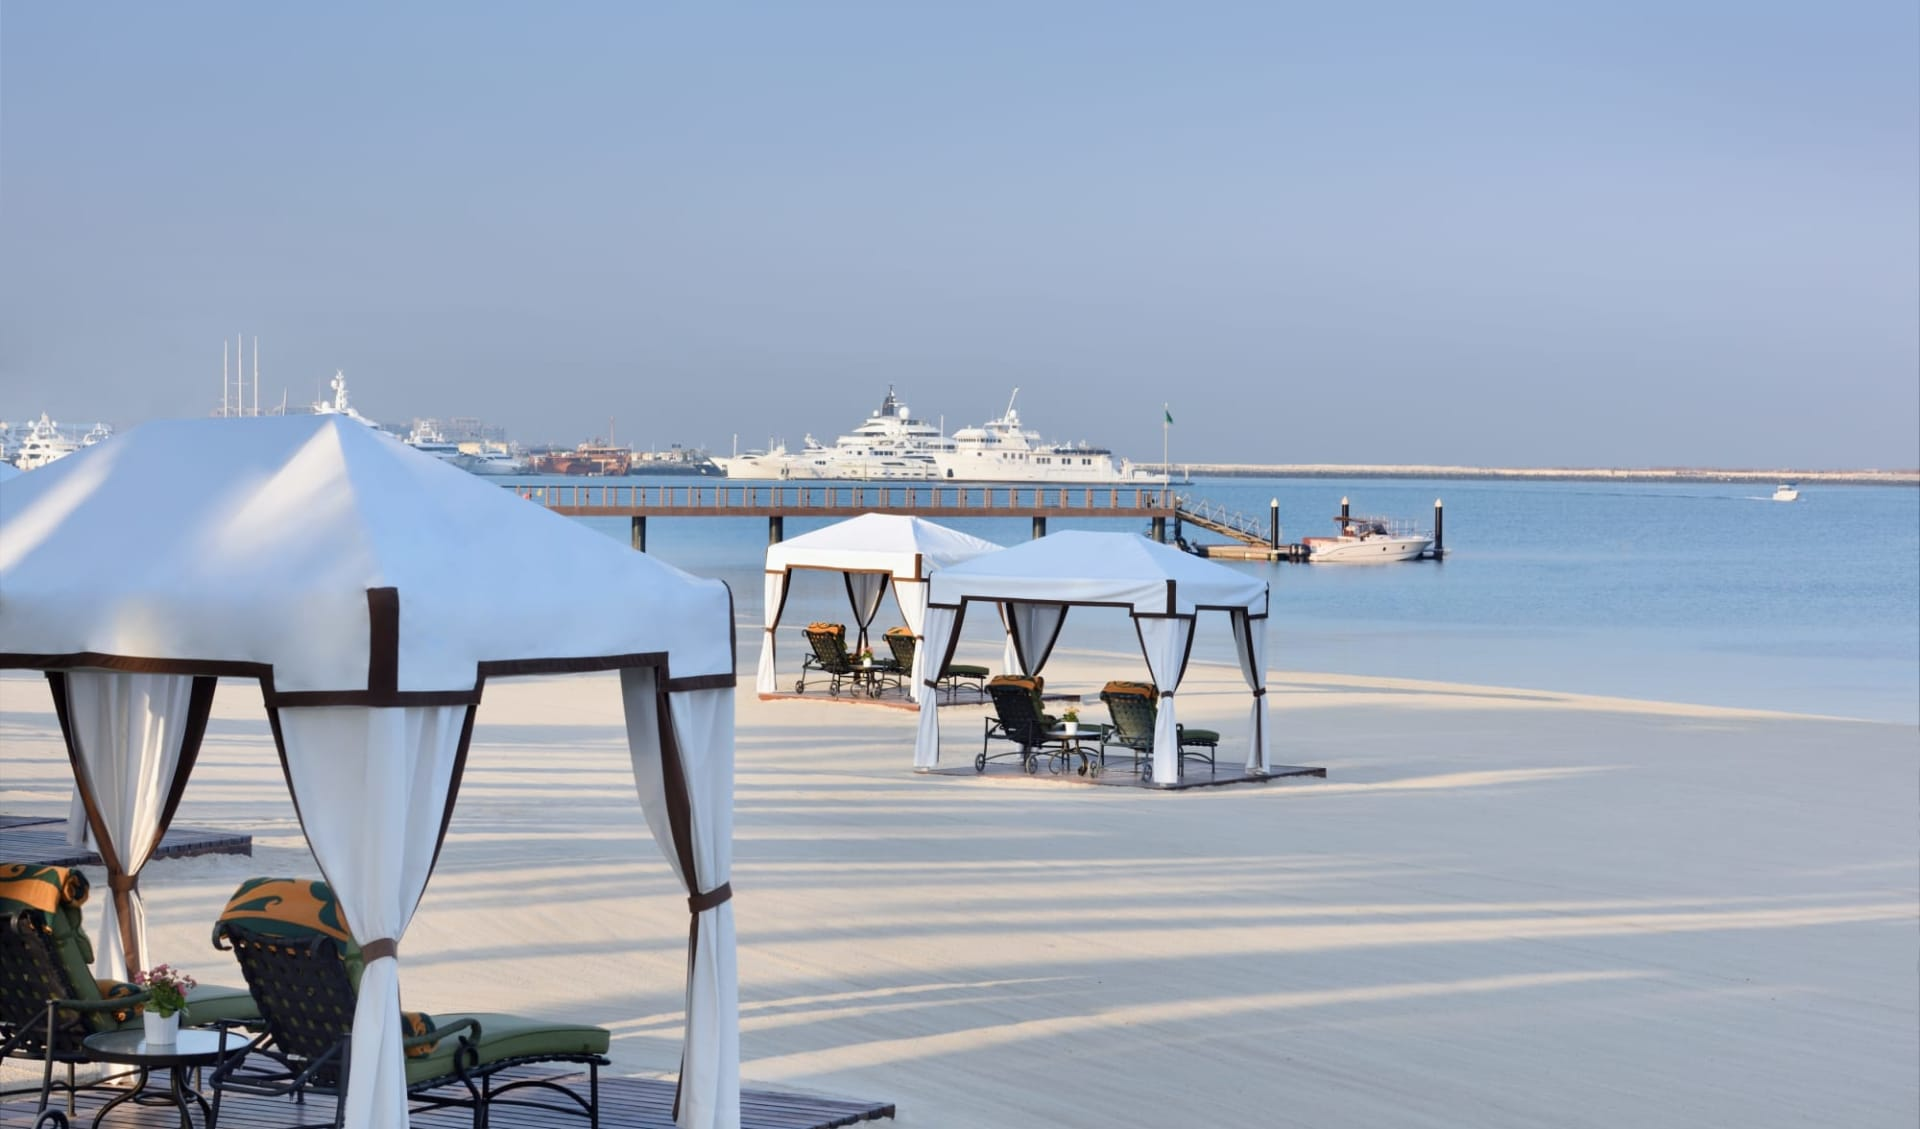 Arabian Court at One&Only Royal Mirage in Dubai: